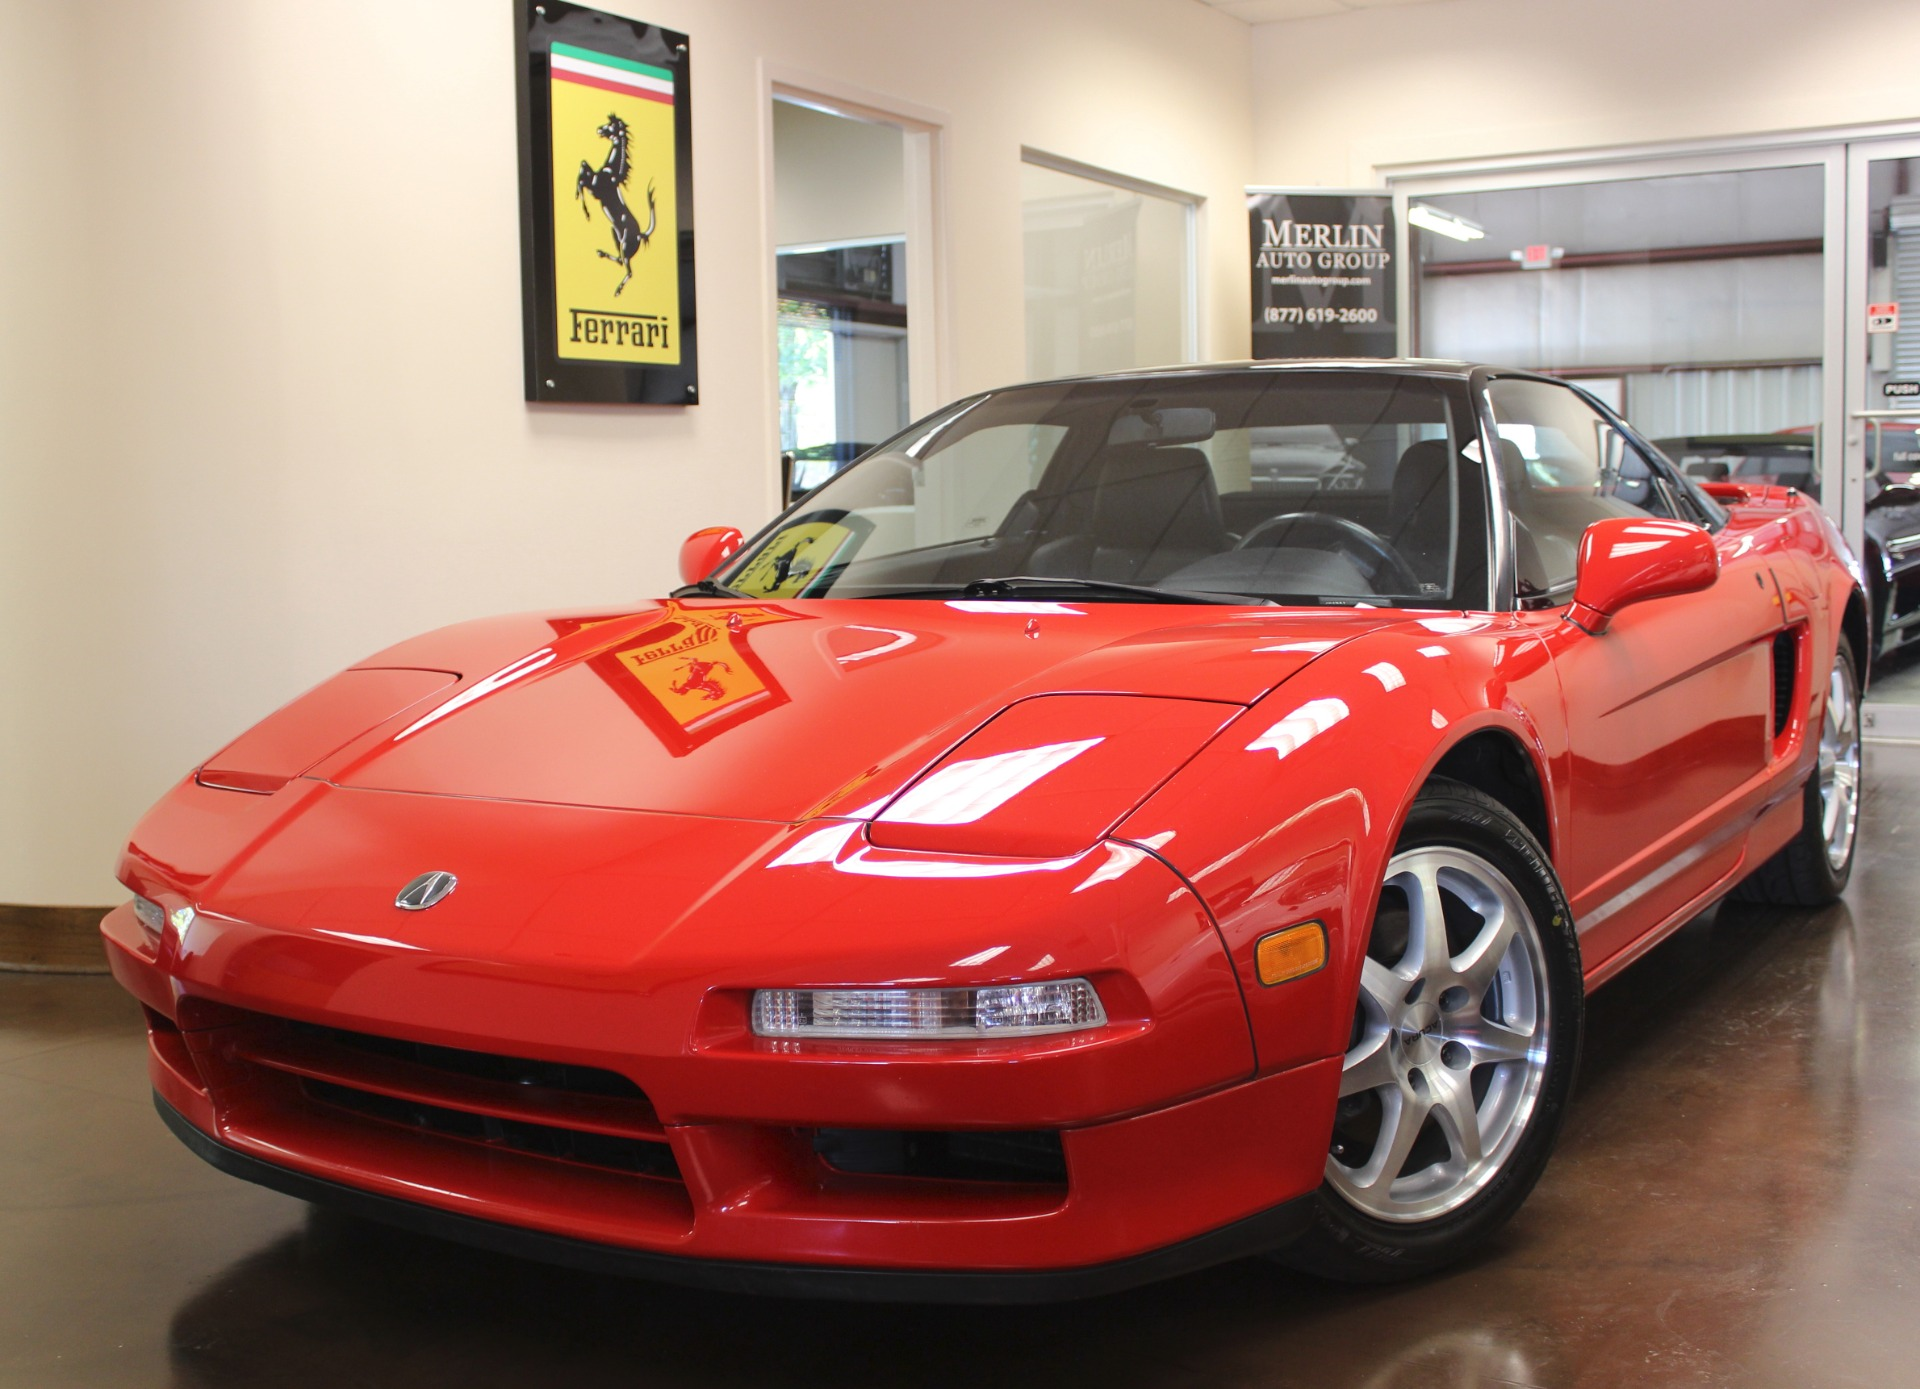 Used 1992 acura nsx red coupe v6 3l manual leather all original